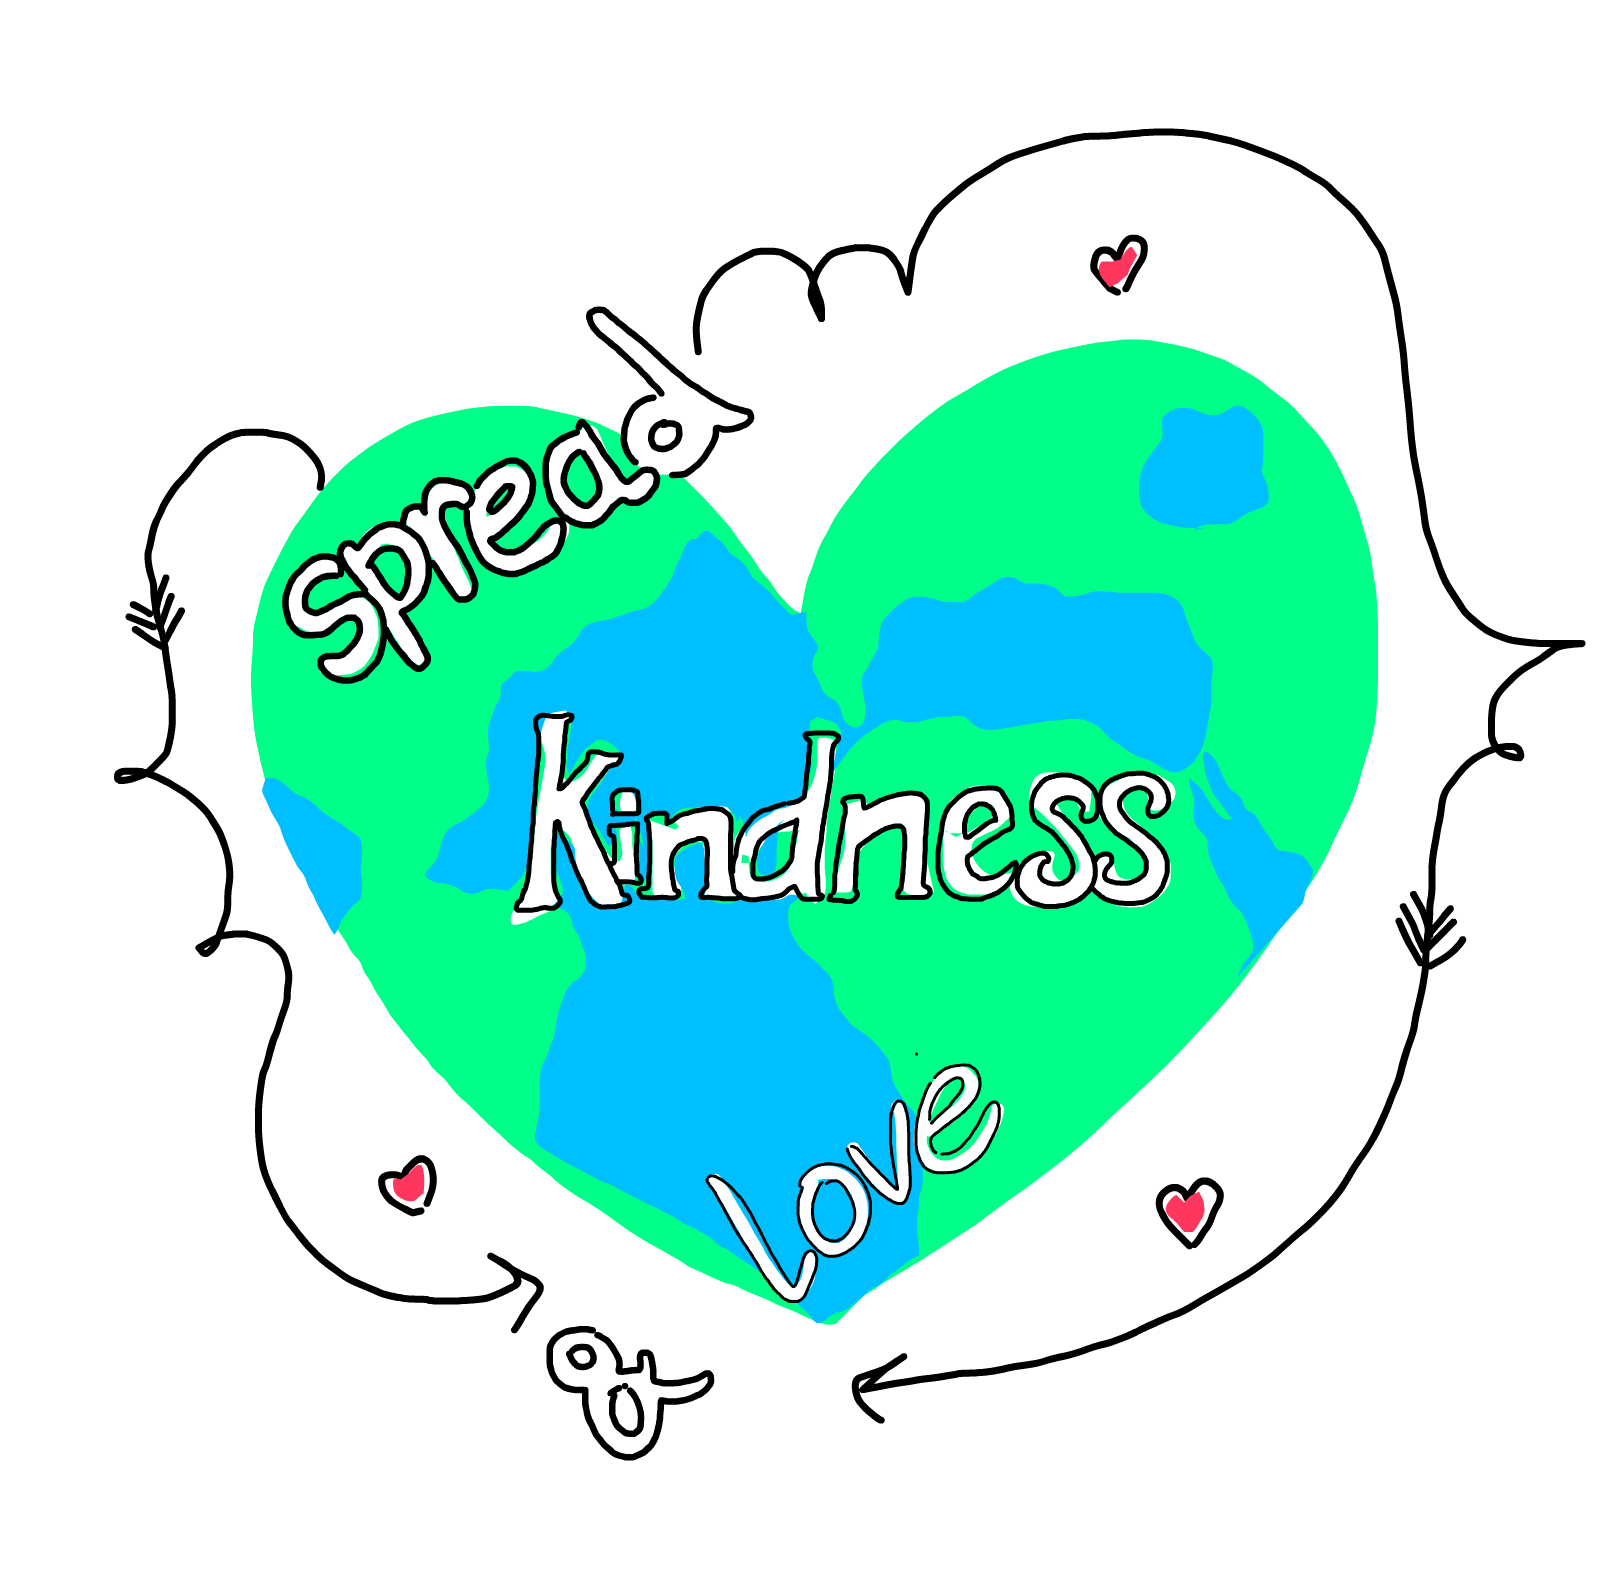 Kindness picture